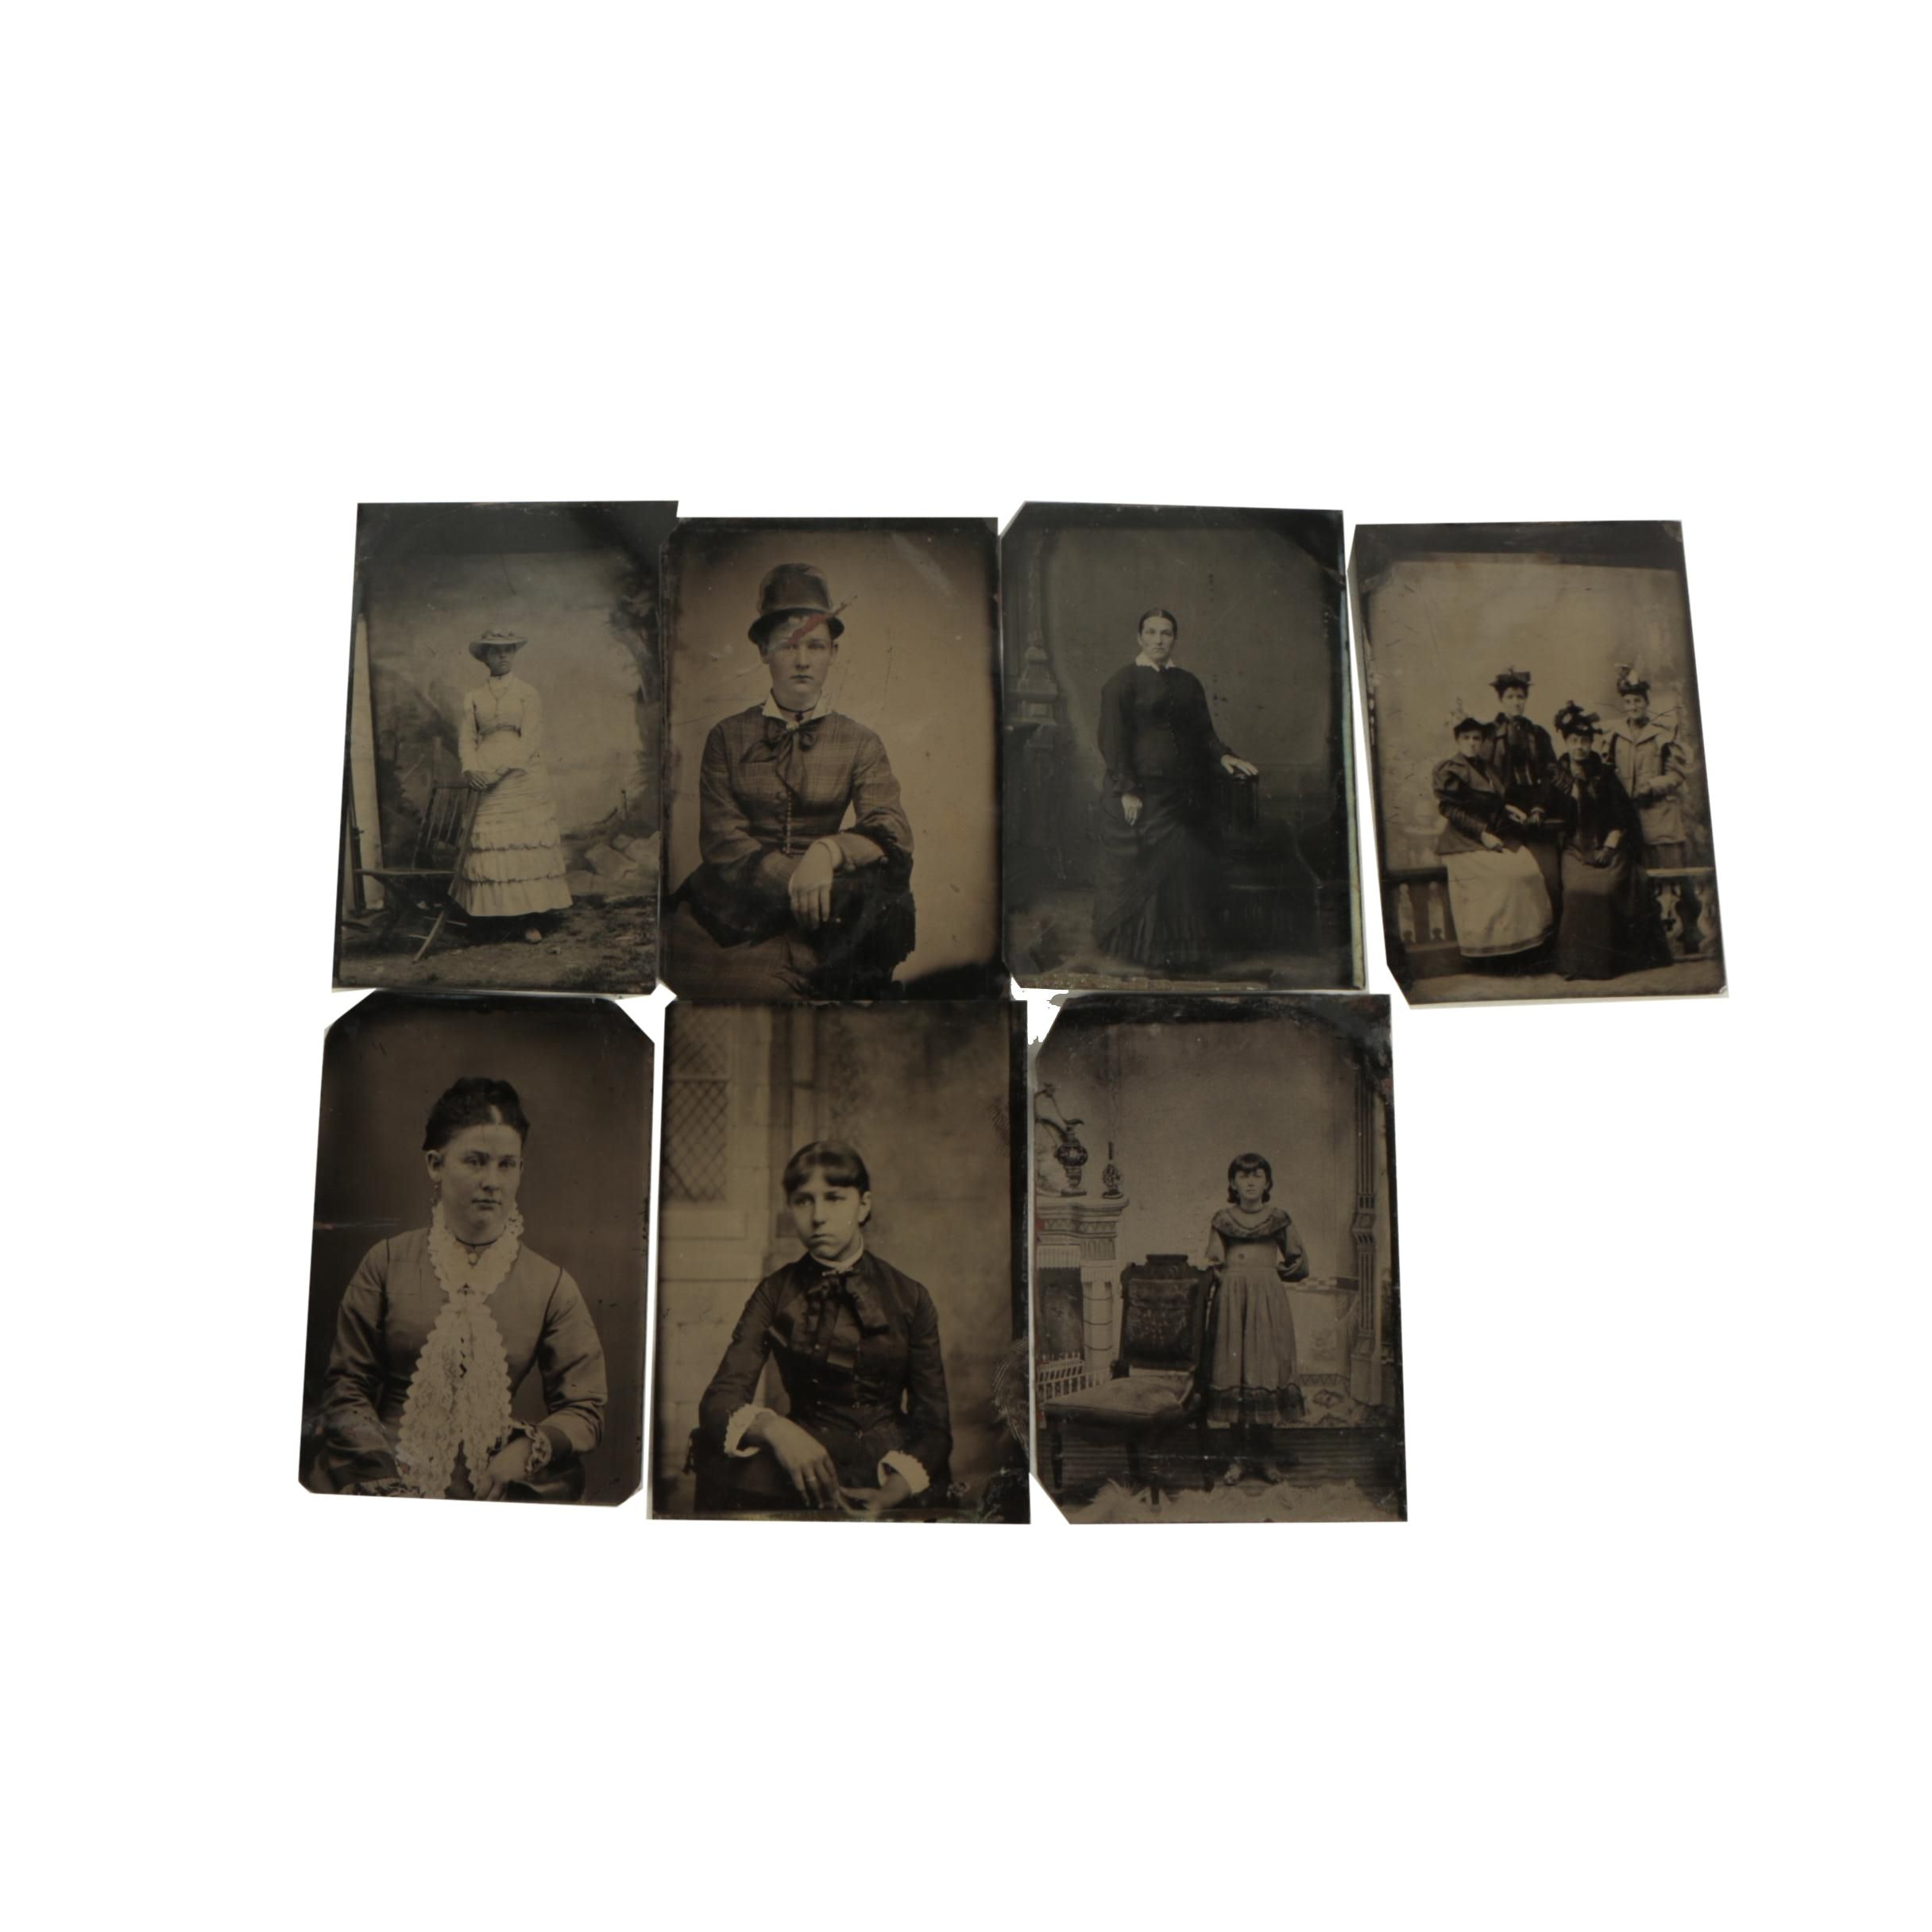 20th Century Tintype Photographs